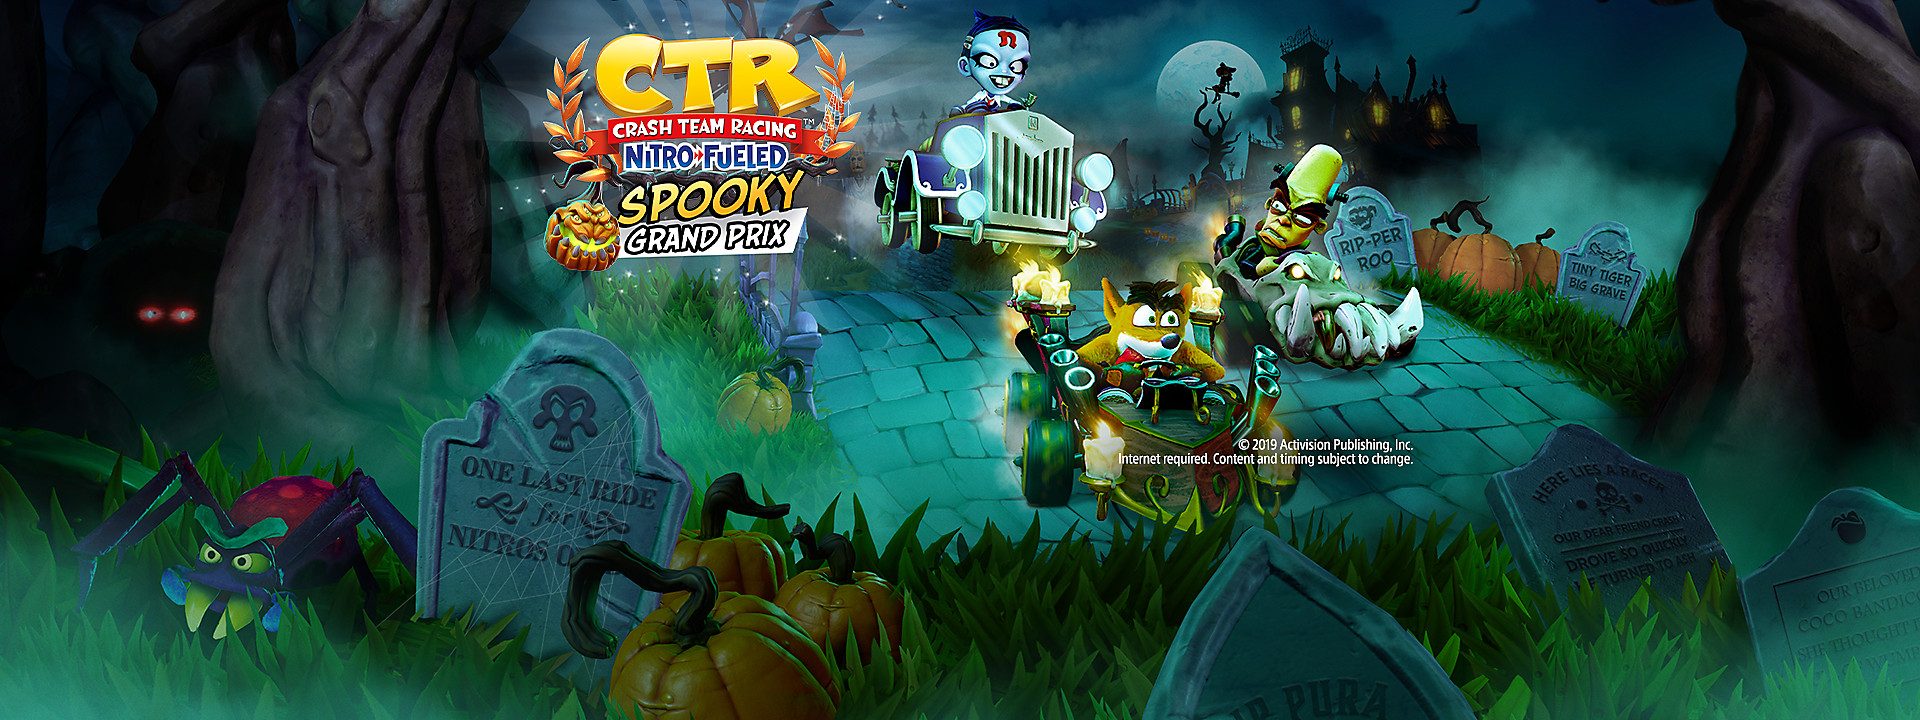 Crash Team Racing Nitro-Fueled - Spooky Grand Prix Now Available